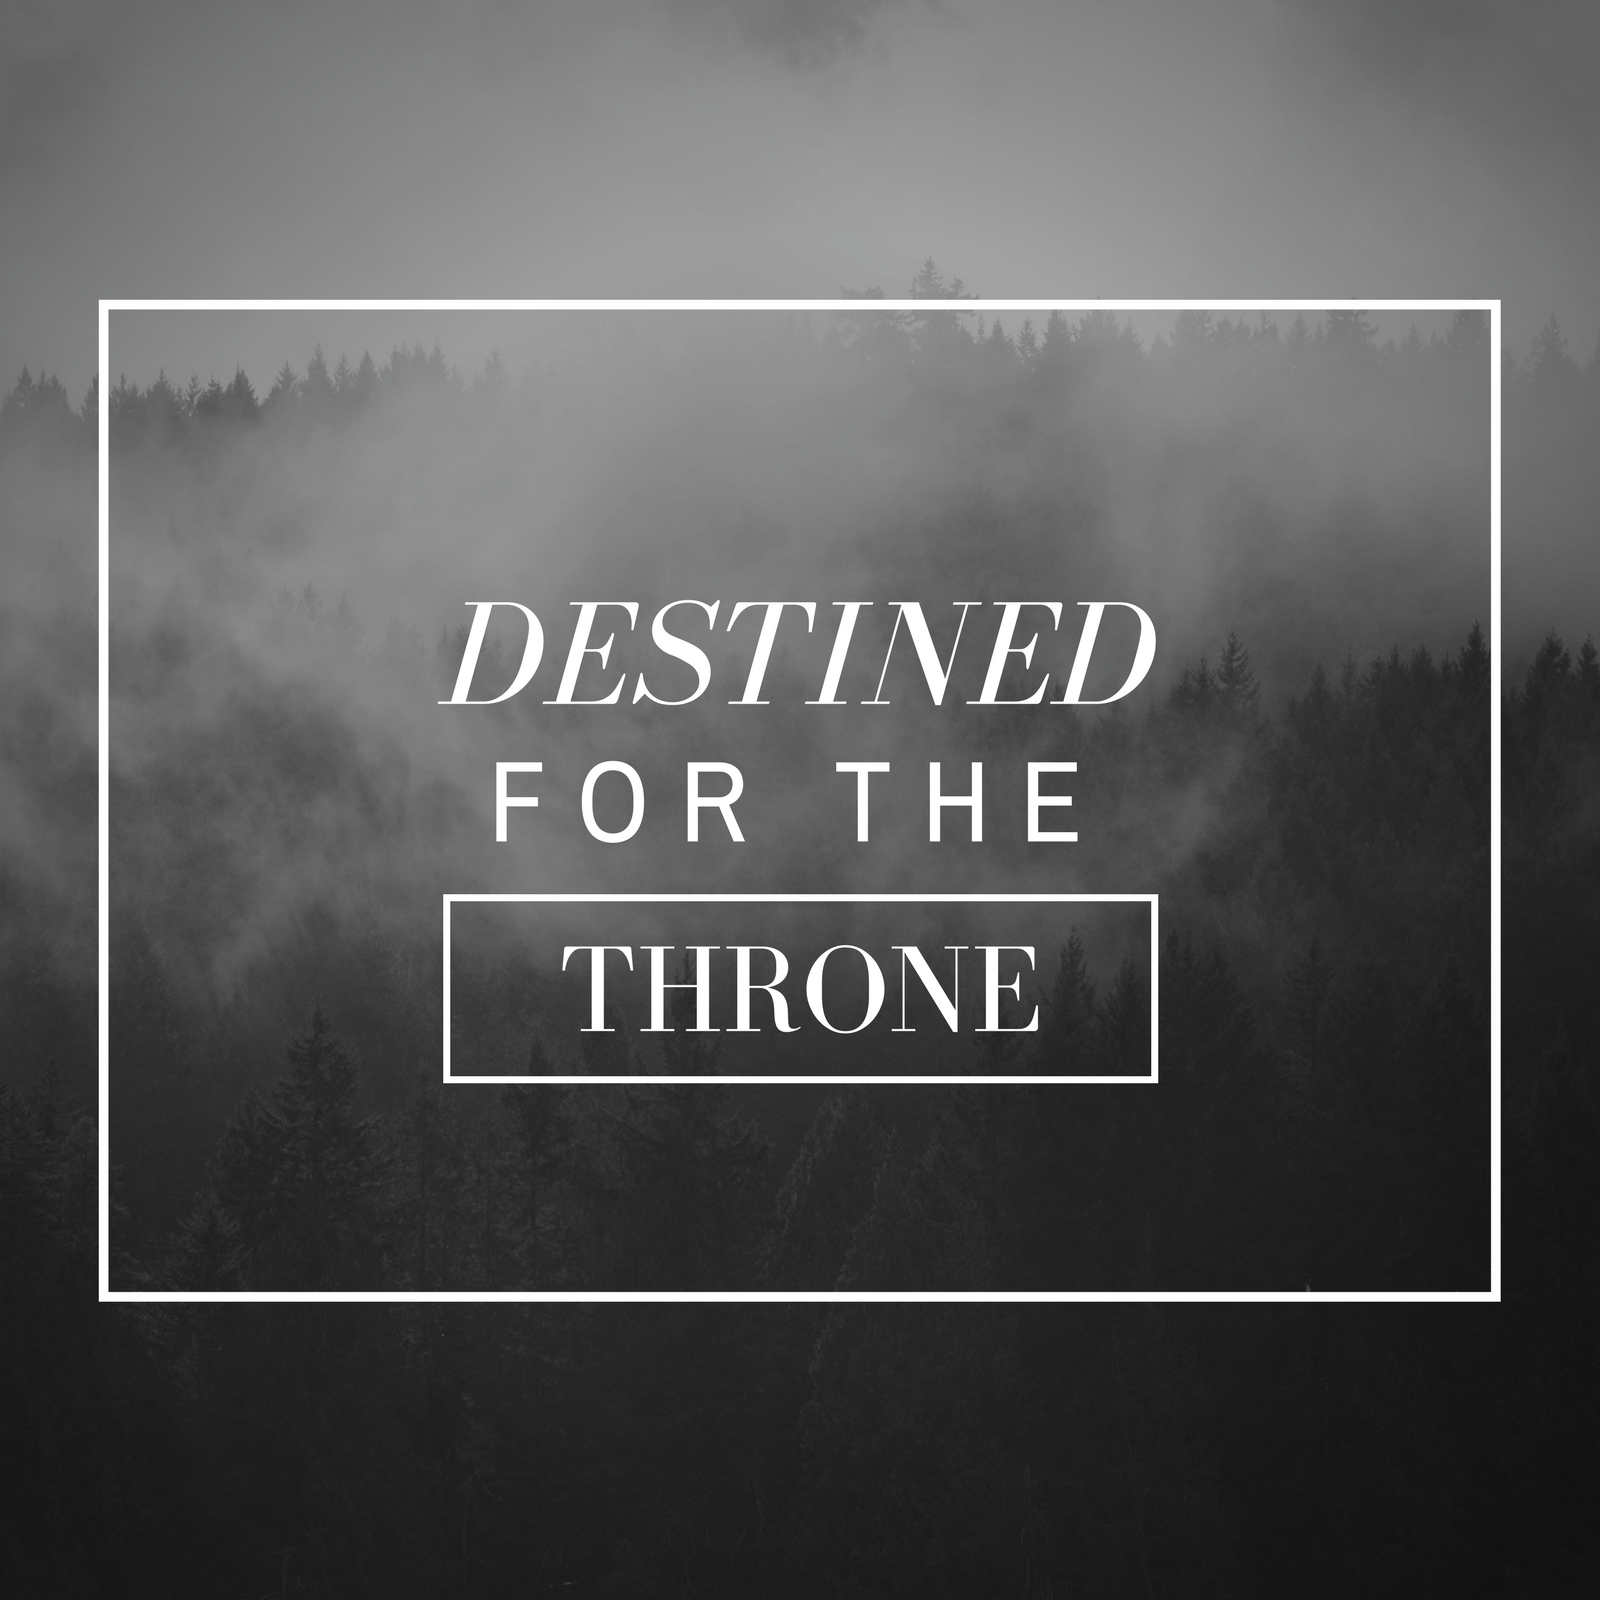 Destined for the Throne 2